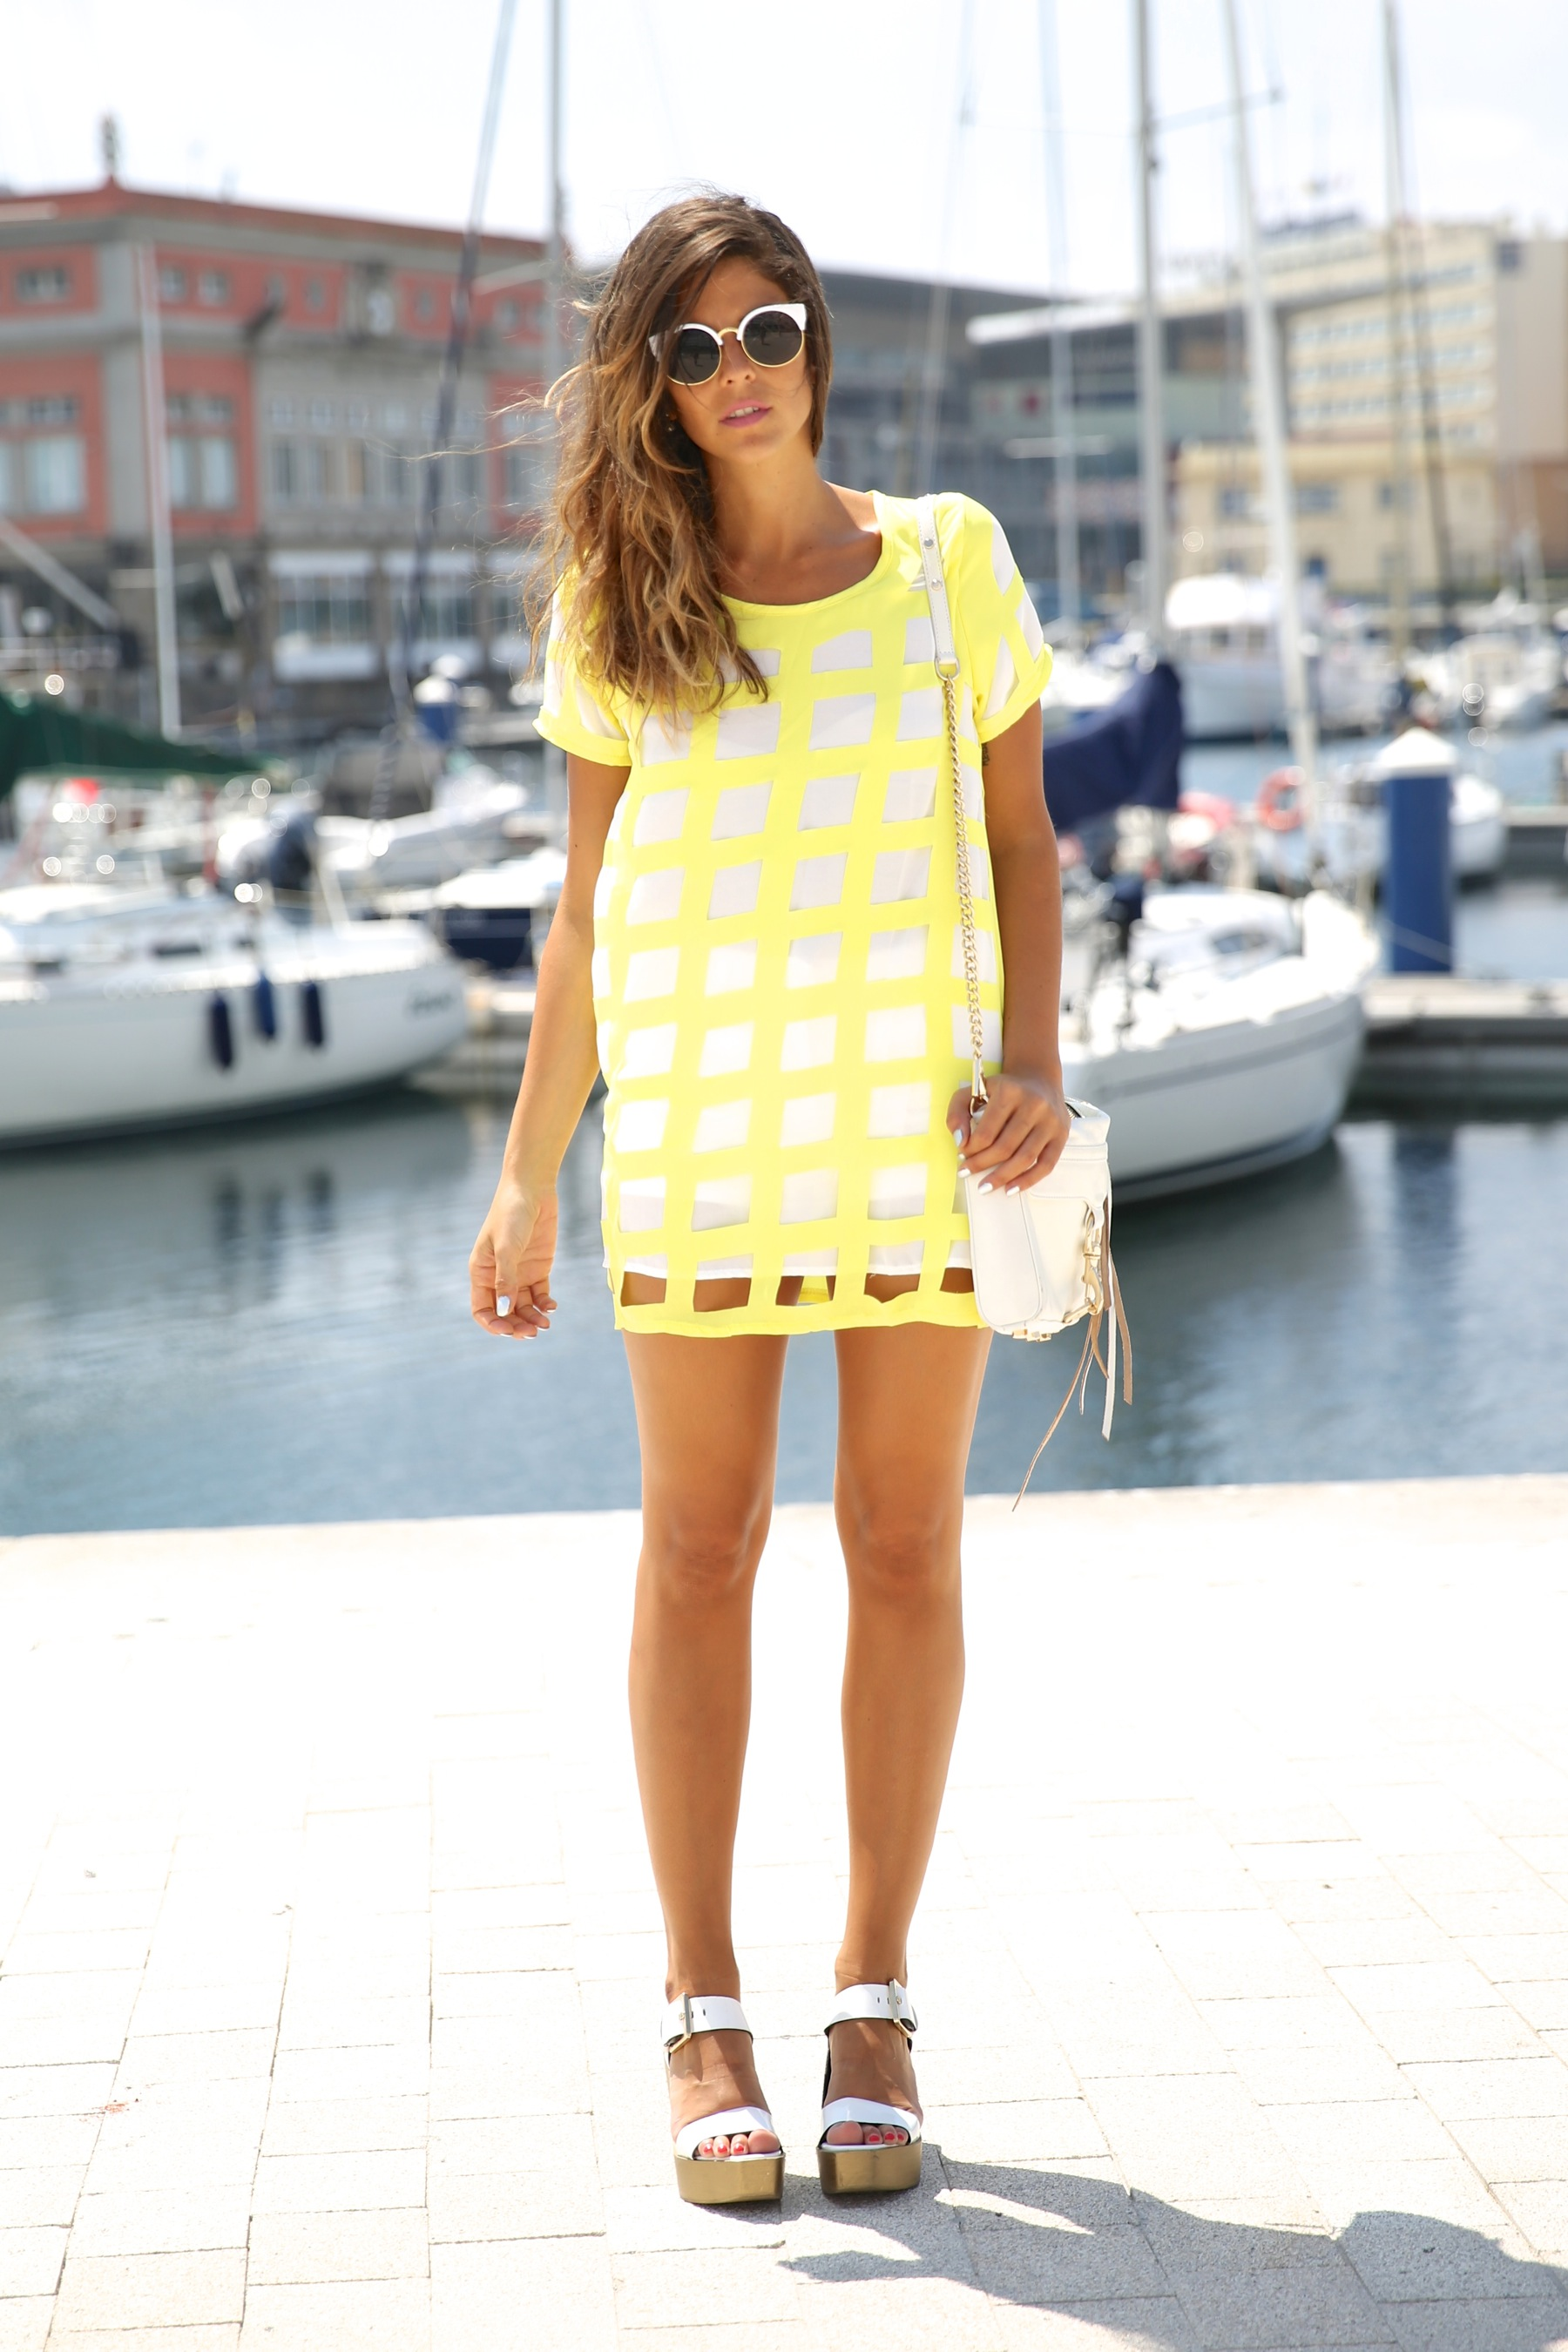 trendy_taste-look-outfit-street_style-ootd-blog-blogger-moda_españa-fashion_spain-coruña-galicia-sandalias_plataforma-platform_sandals-rebecca_minkoff-yellow-amarillo-vestido-dress-plaid-cuadros-12